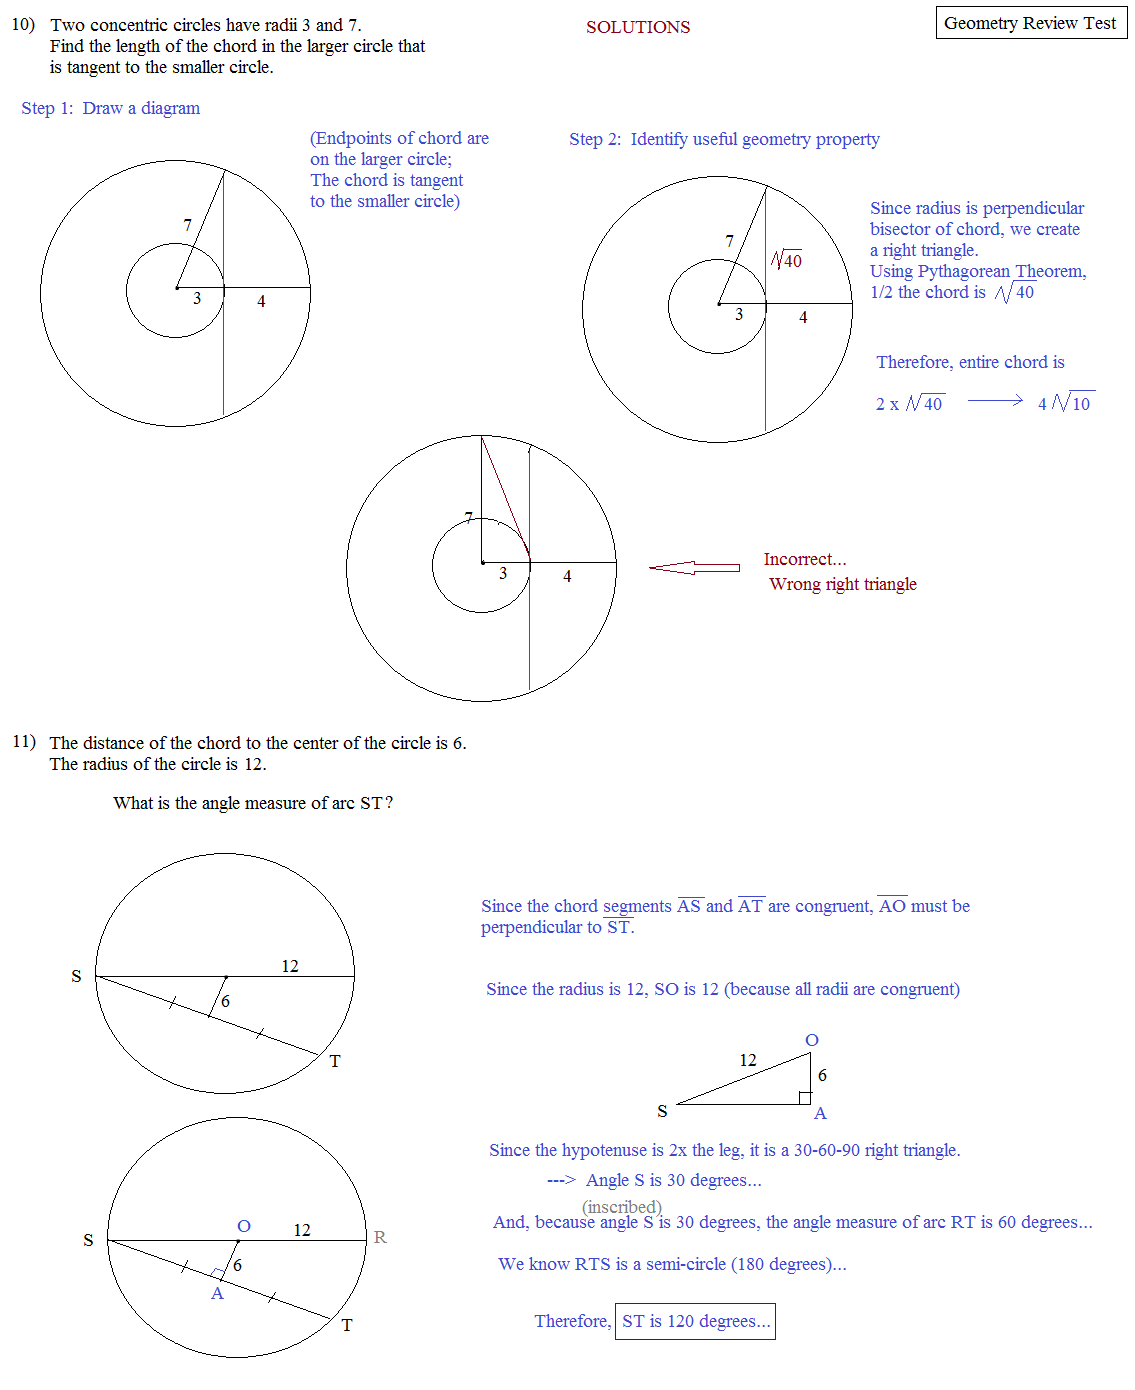 mathematics and plane geometry Plane geometry if you like drawing, then geometry is for you plane geometry is about flat shapes like lines, circles and triangles shapes that.